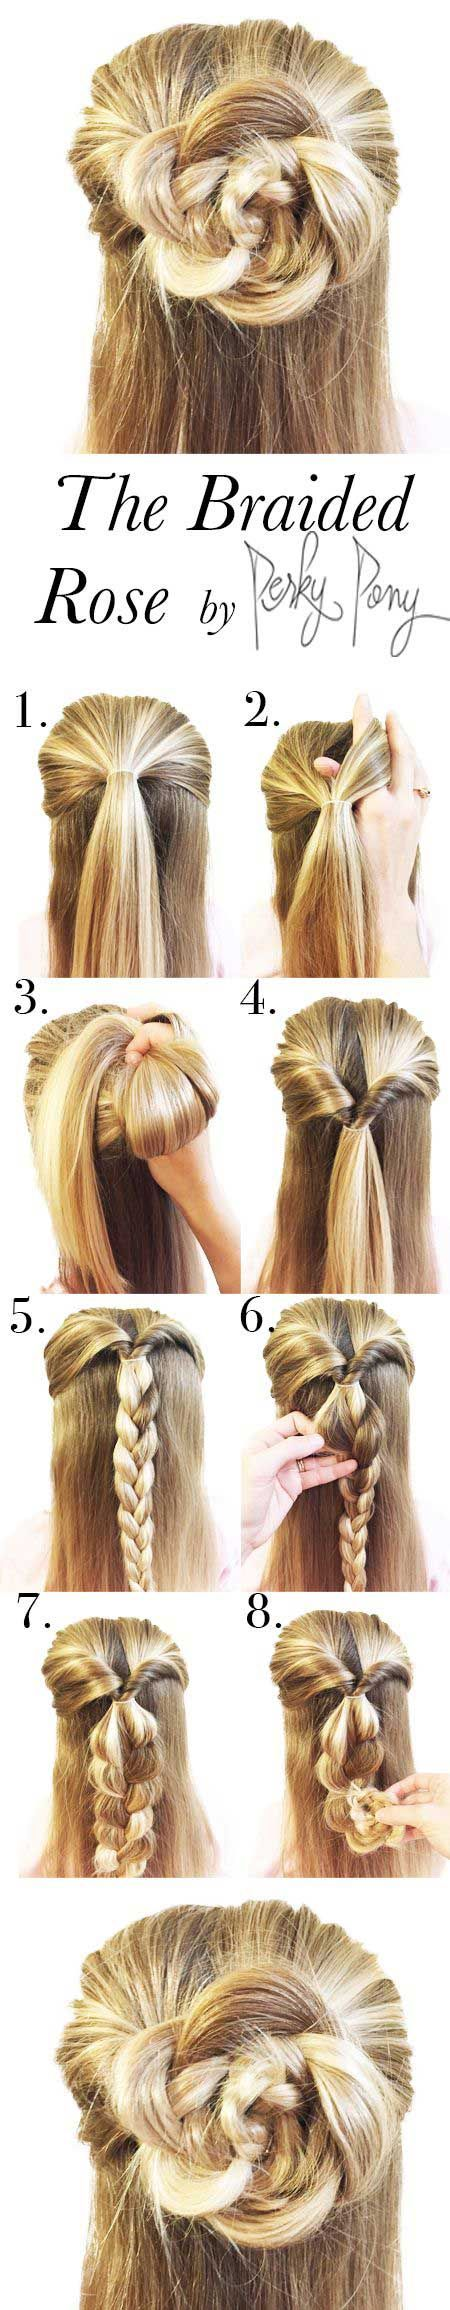 By now, we're all well aware that the half-up half-down hairstyle is very much A Thing in the beauty world. It started with messy half top knots that were perfect for lazy days when we still wanted to look cute, but has expanded to even be perfect for fancy occasions. If you're looking for the perfect prom hairstyle, look no further. These half-up half-down tutorials are simple, beautiful, and ready to make a statement. #hairstyles #longhairtips